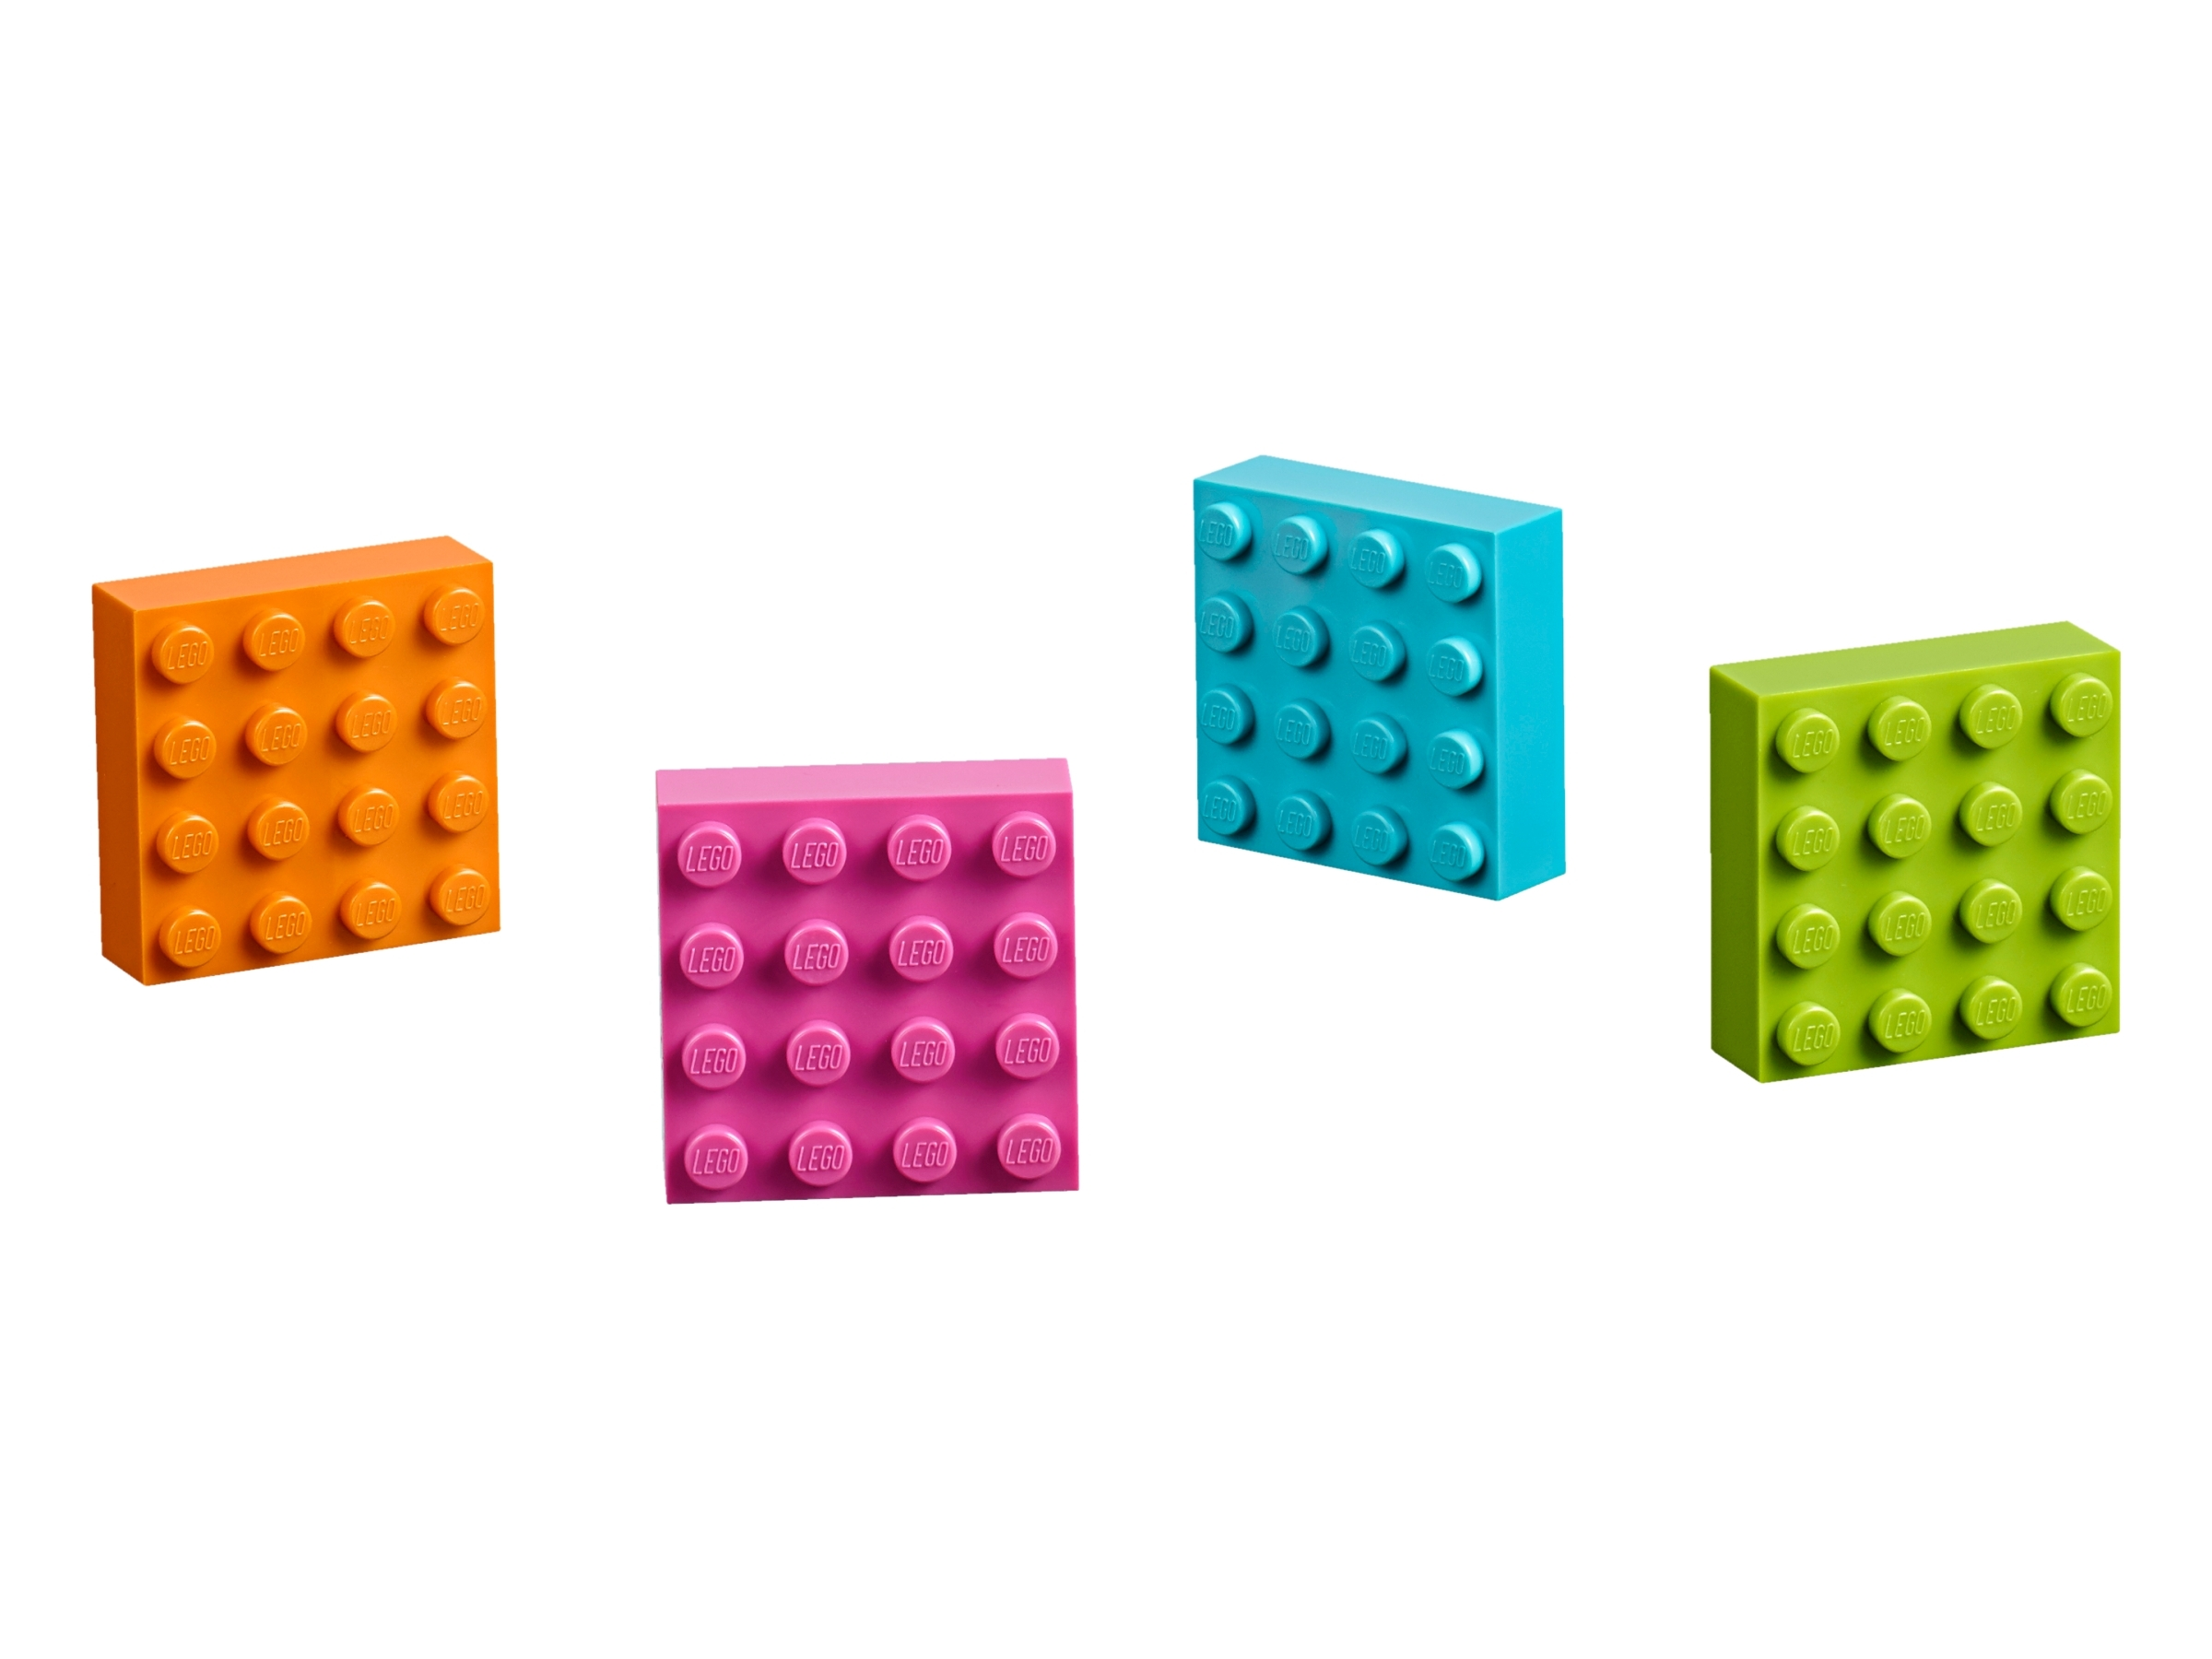 Lego 4x4 Brick Magnets 853900 Miscellaneous Buy Online At The Official Lego Shop Au